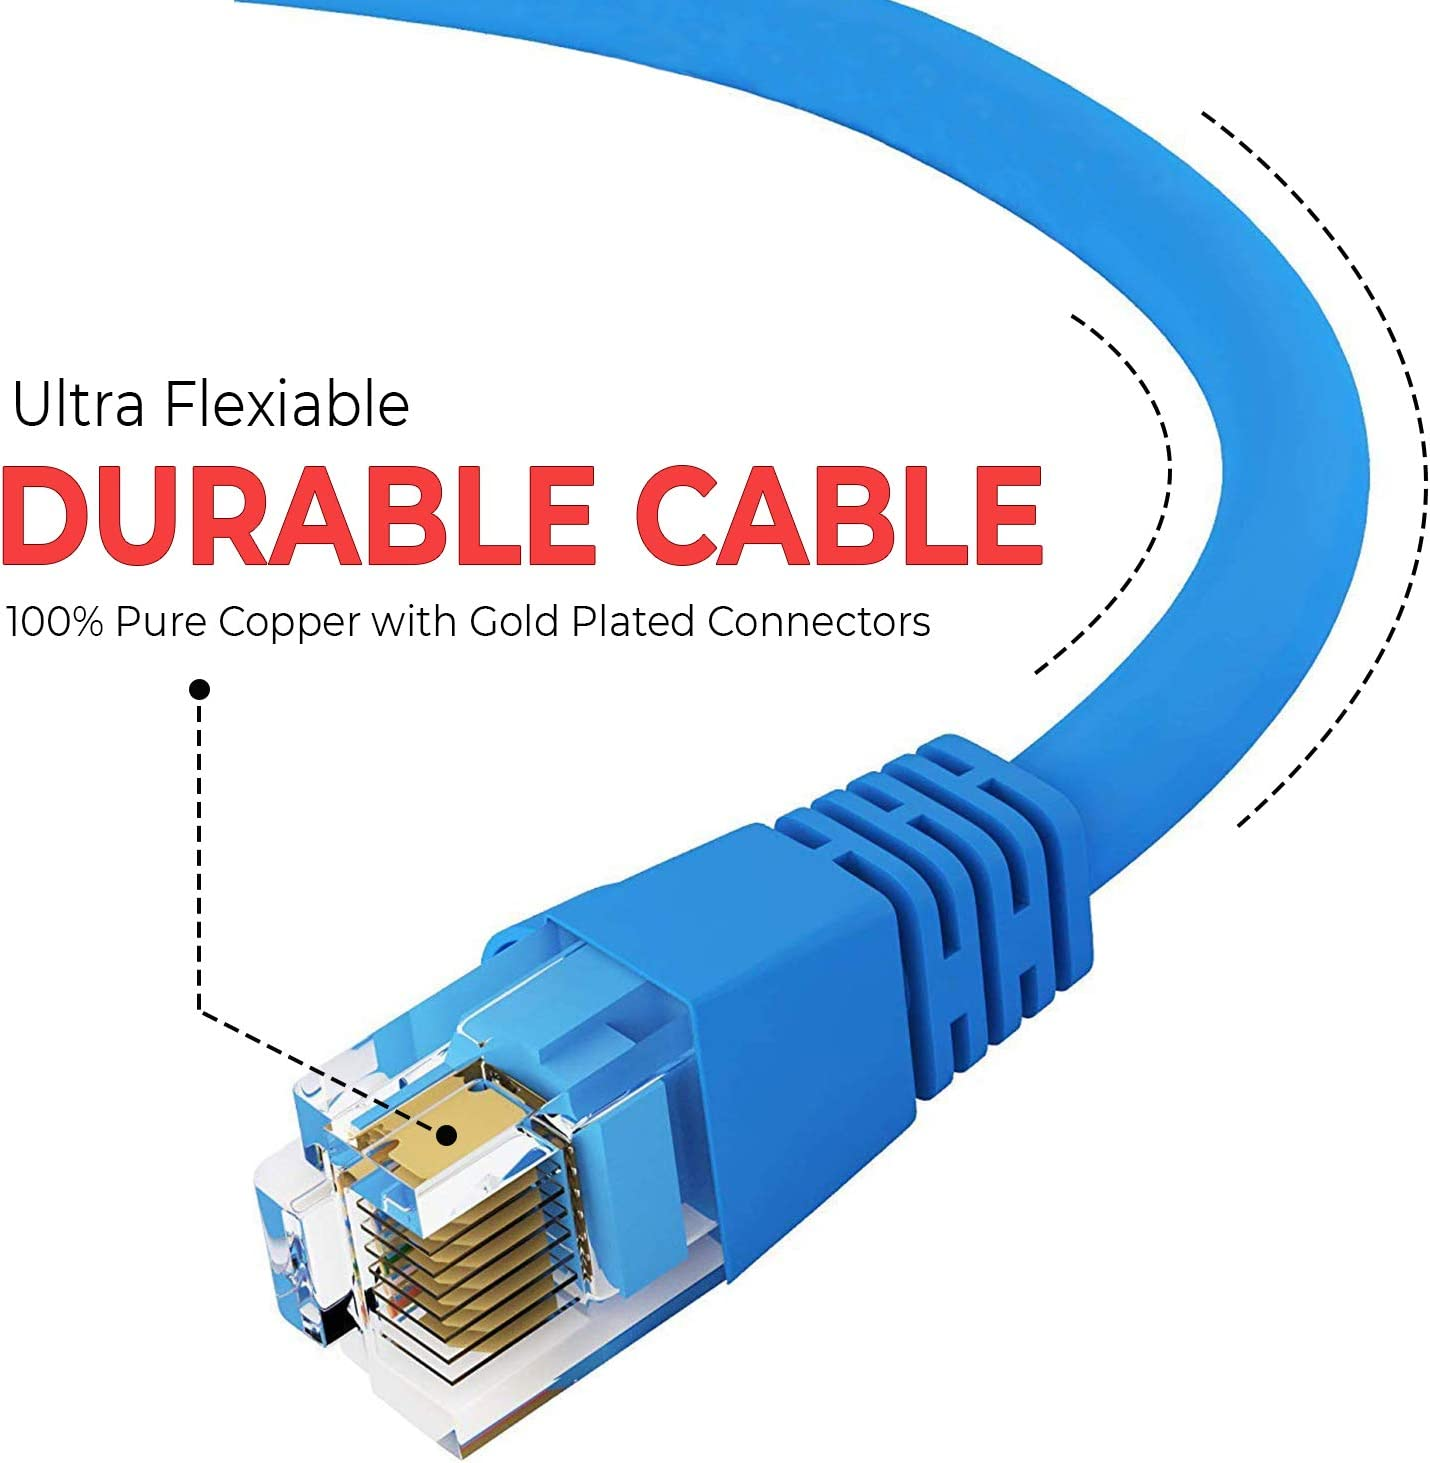 24AWG Network Cable with Gold Plated RJ45 Non-Booted Connector 10-Pack - 3 Feet 1Gigabit//Sec High Speed LAN Internet//Patch Cable GOWOS Cat5e Ethernet Cable 350MHz Gray